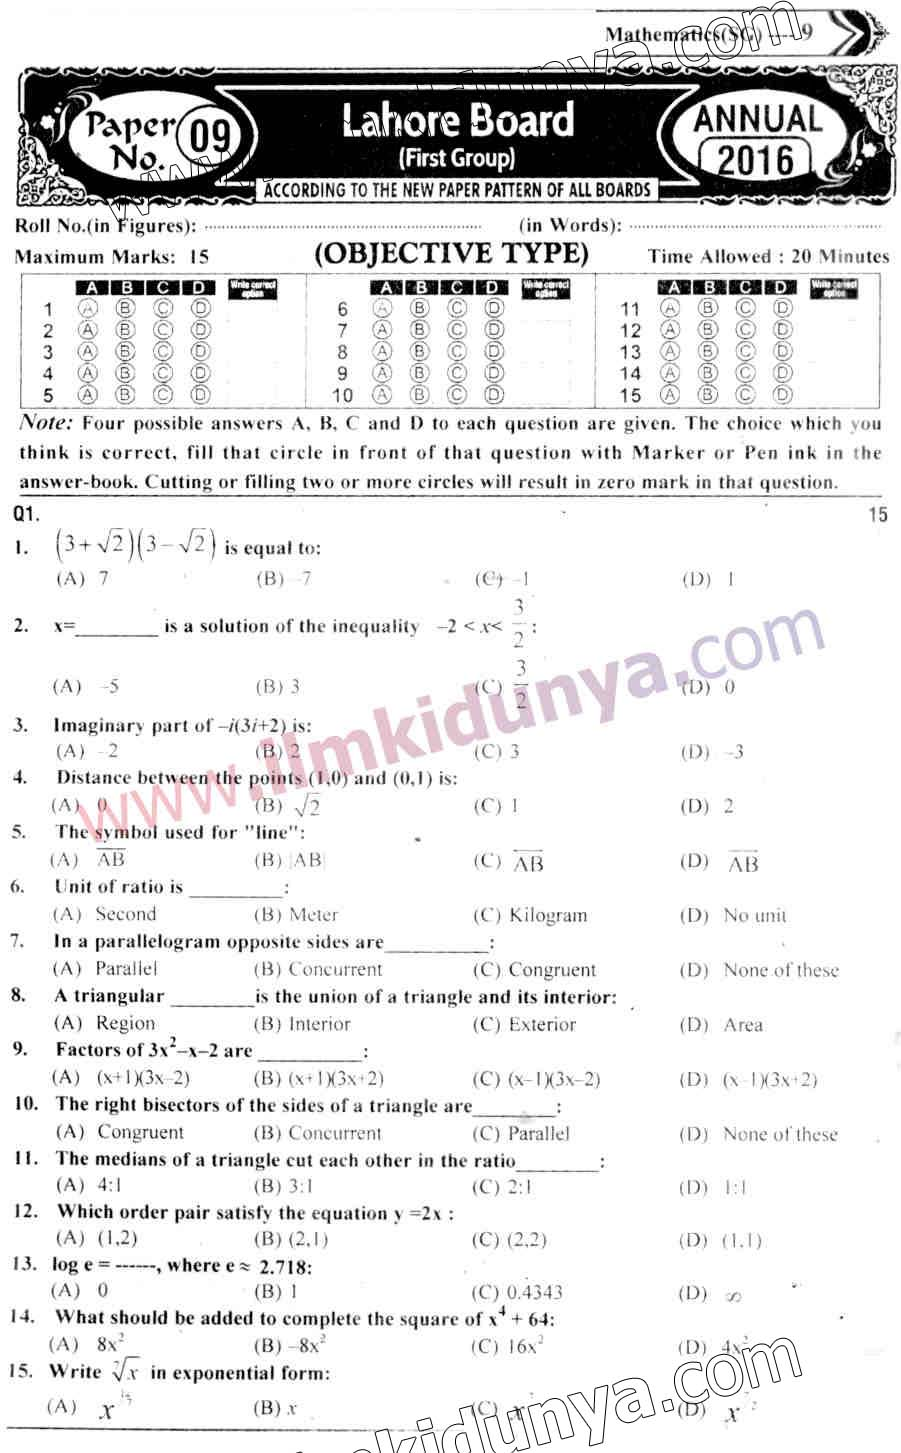 Past Papers 2016 Lahore Board 9th Class Mathematics Group